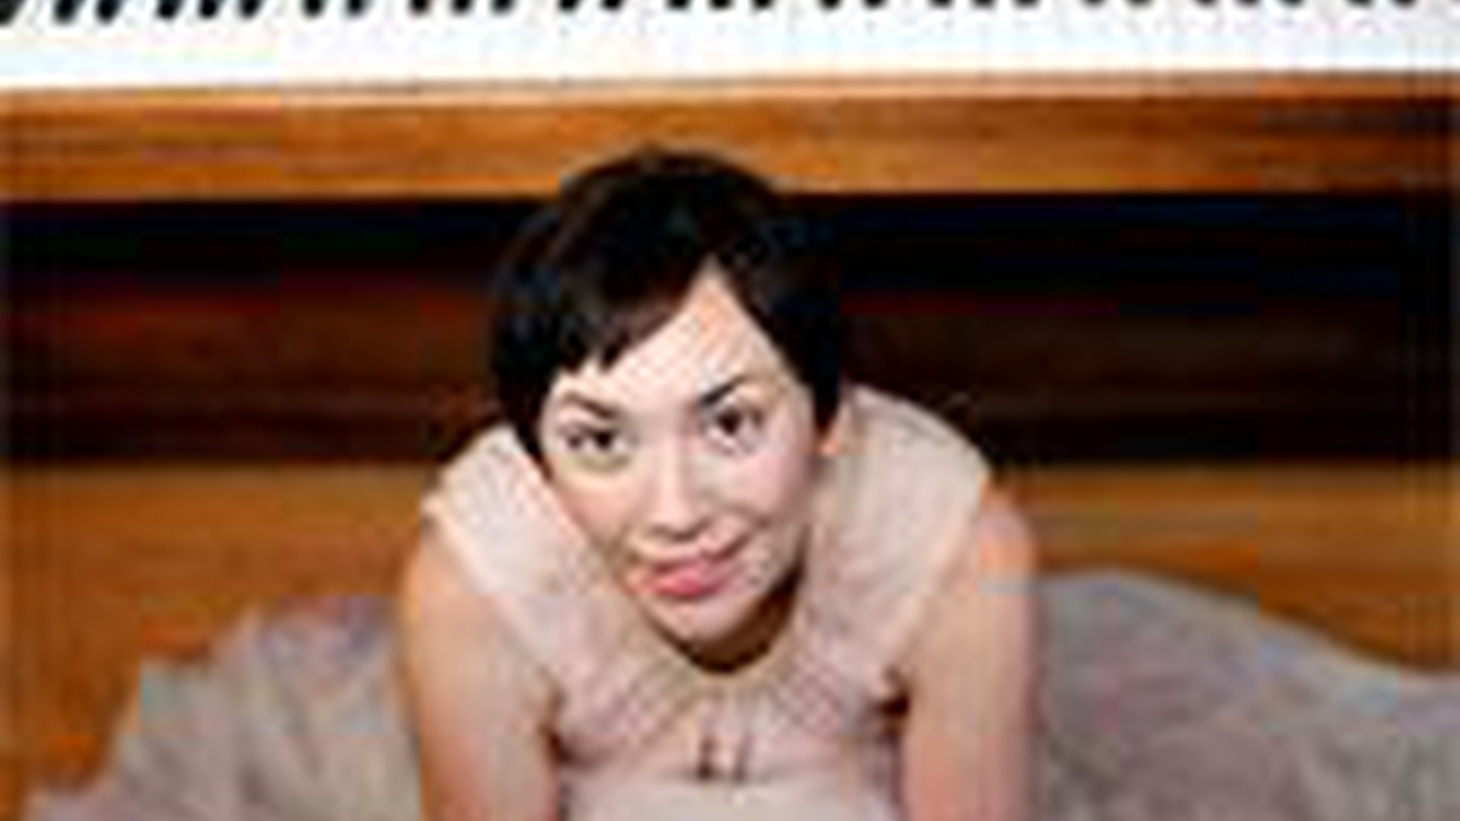 Singer-songwriter Inara George drops by The Open Road for a guest DJ set from 11 to midnight. George's latest project is The Bird and The Bee with producer and keyboardist Greg Kurstin.